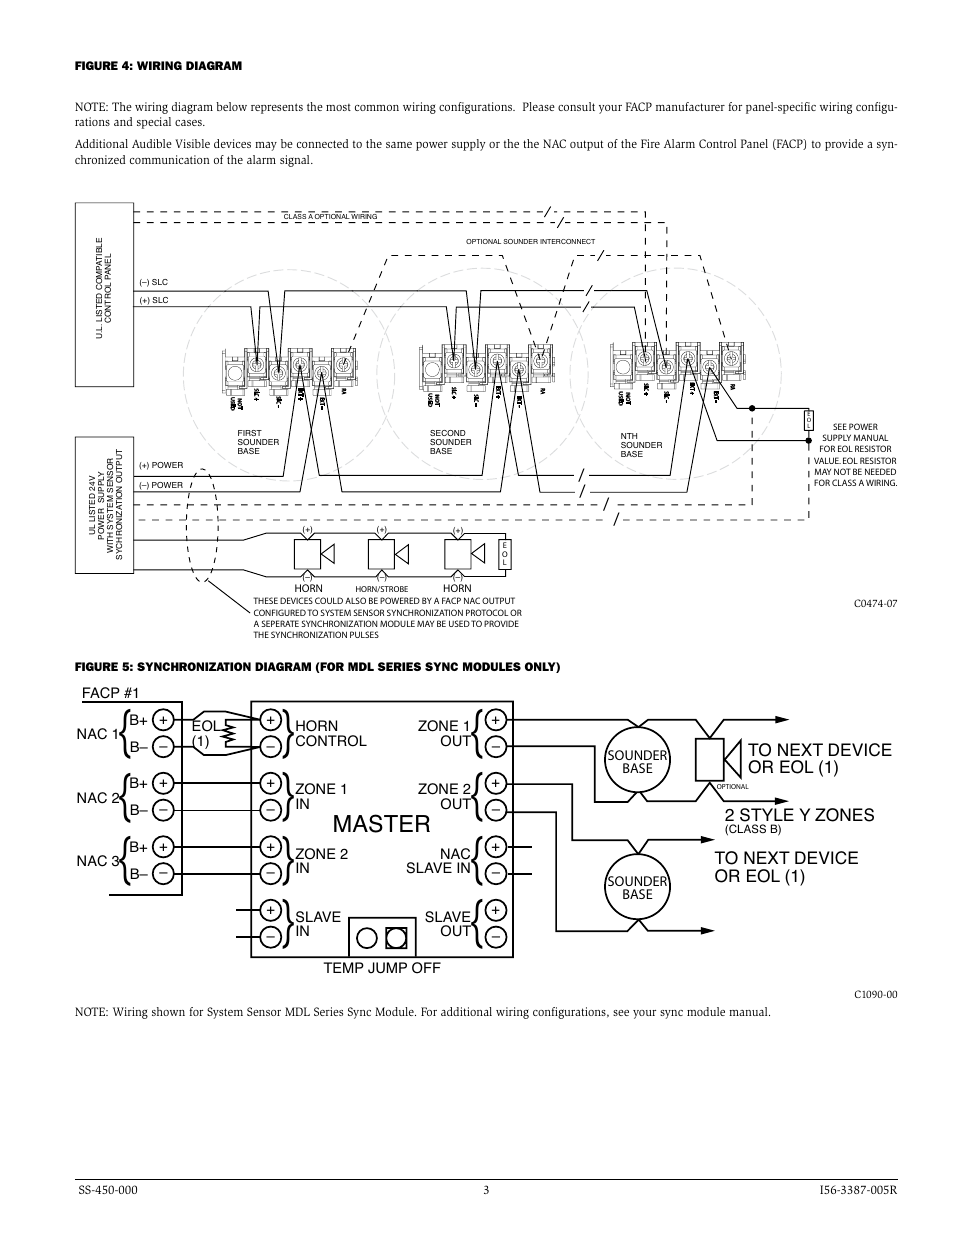 Wiring Diagram For Fire Alarm Sounder : Nac wiring diagram images